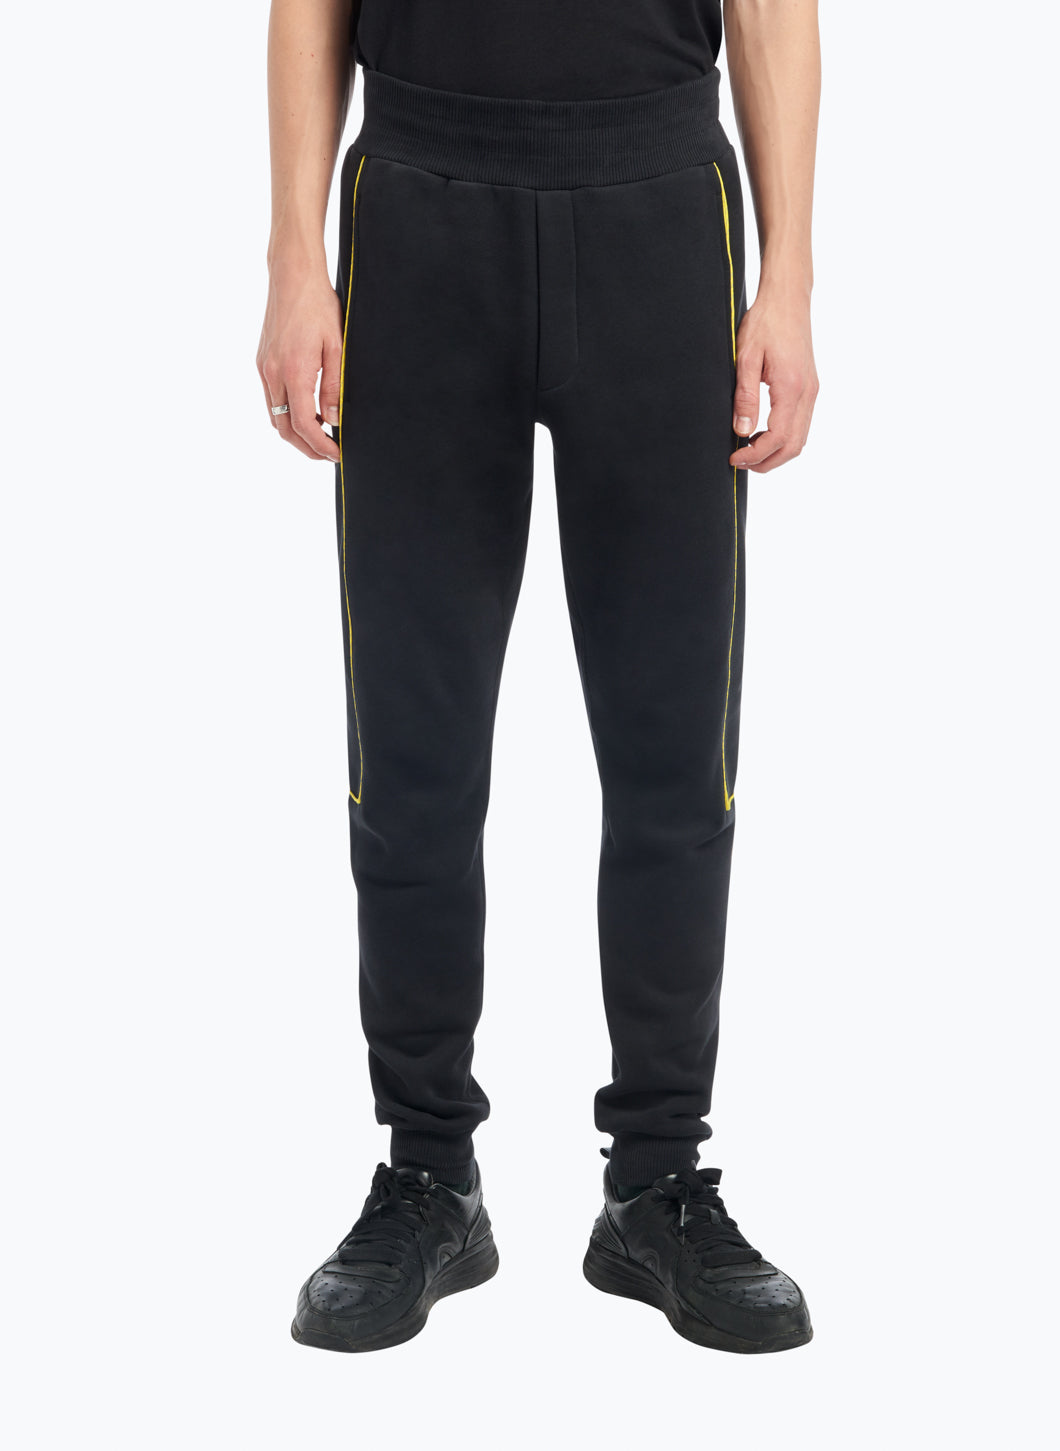 Jogging Pants with Side Cutouts in Black Fleece with Yellow Trim